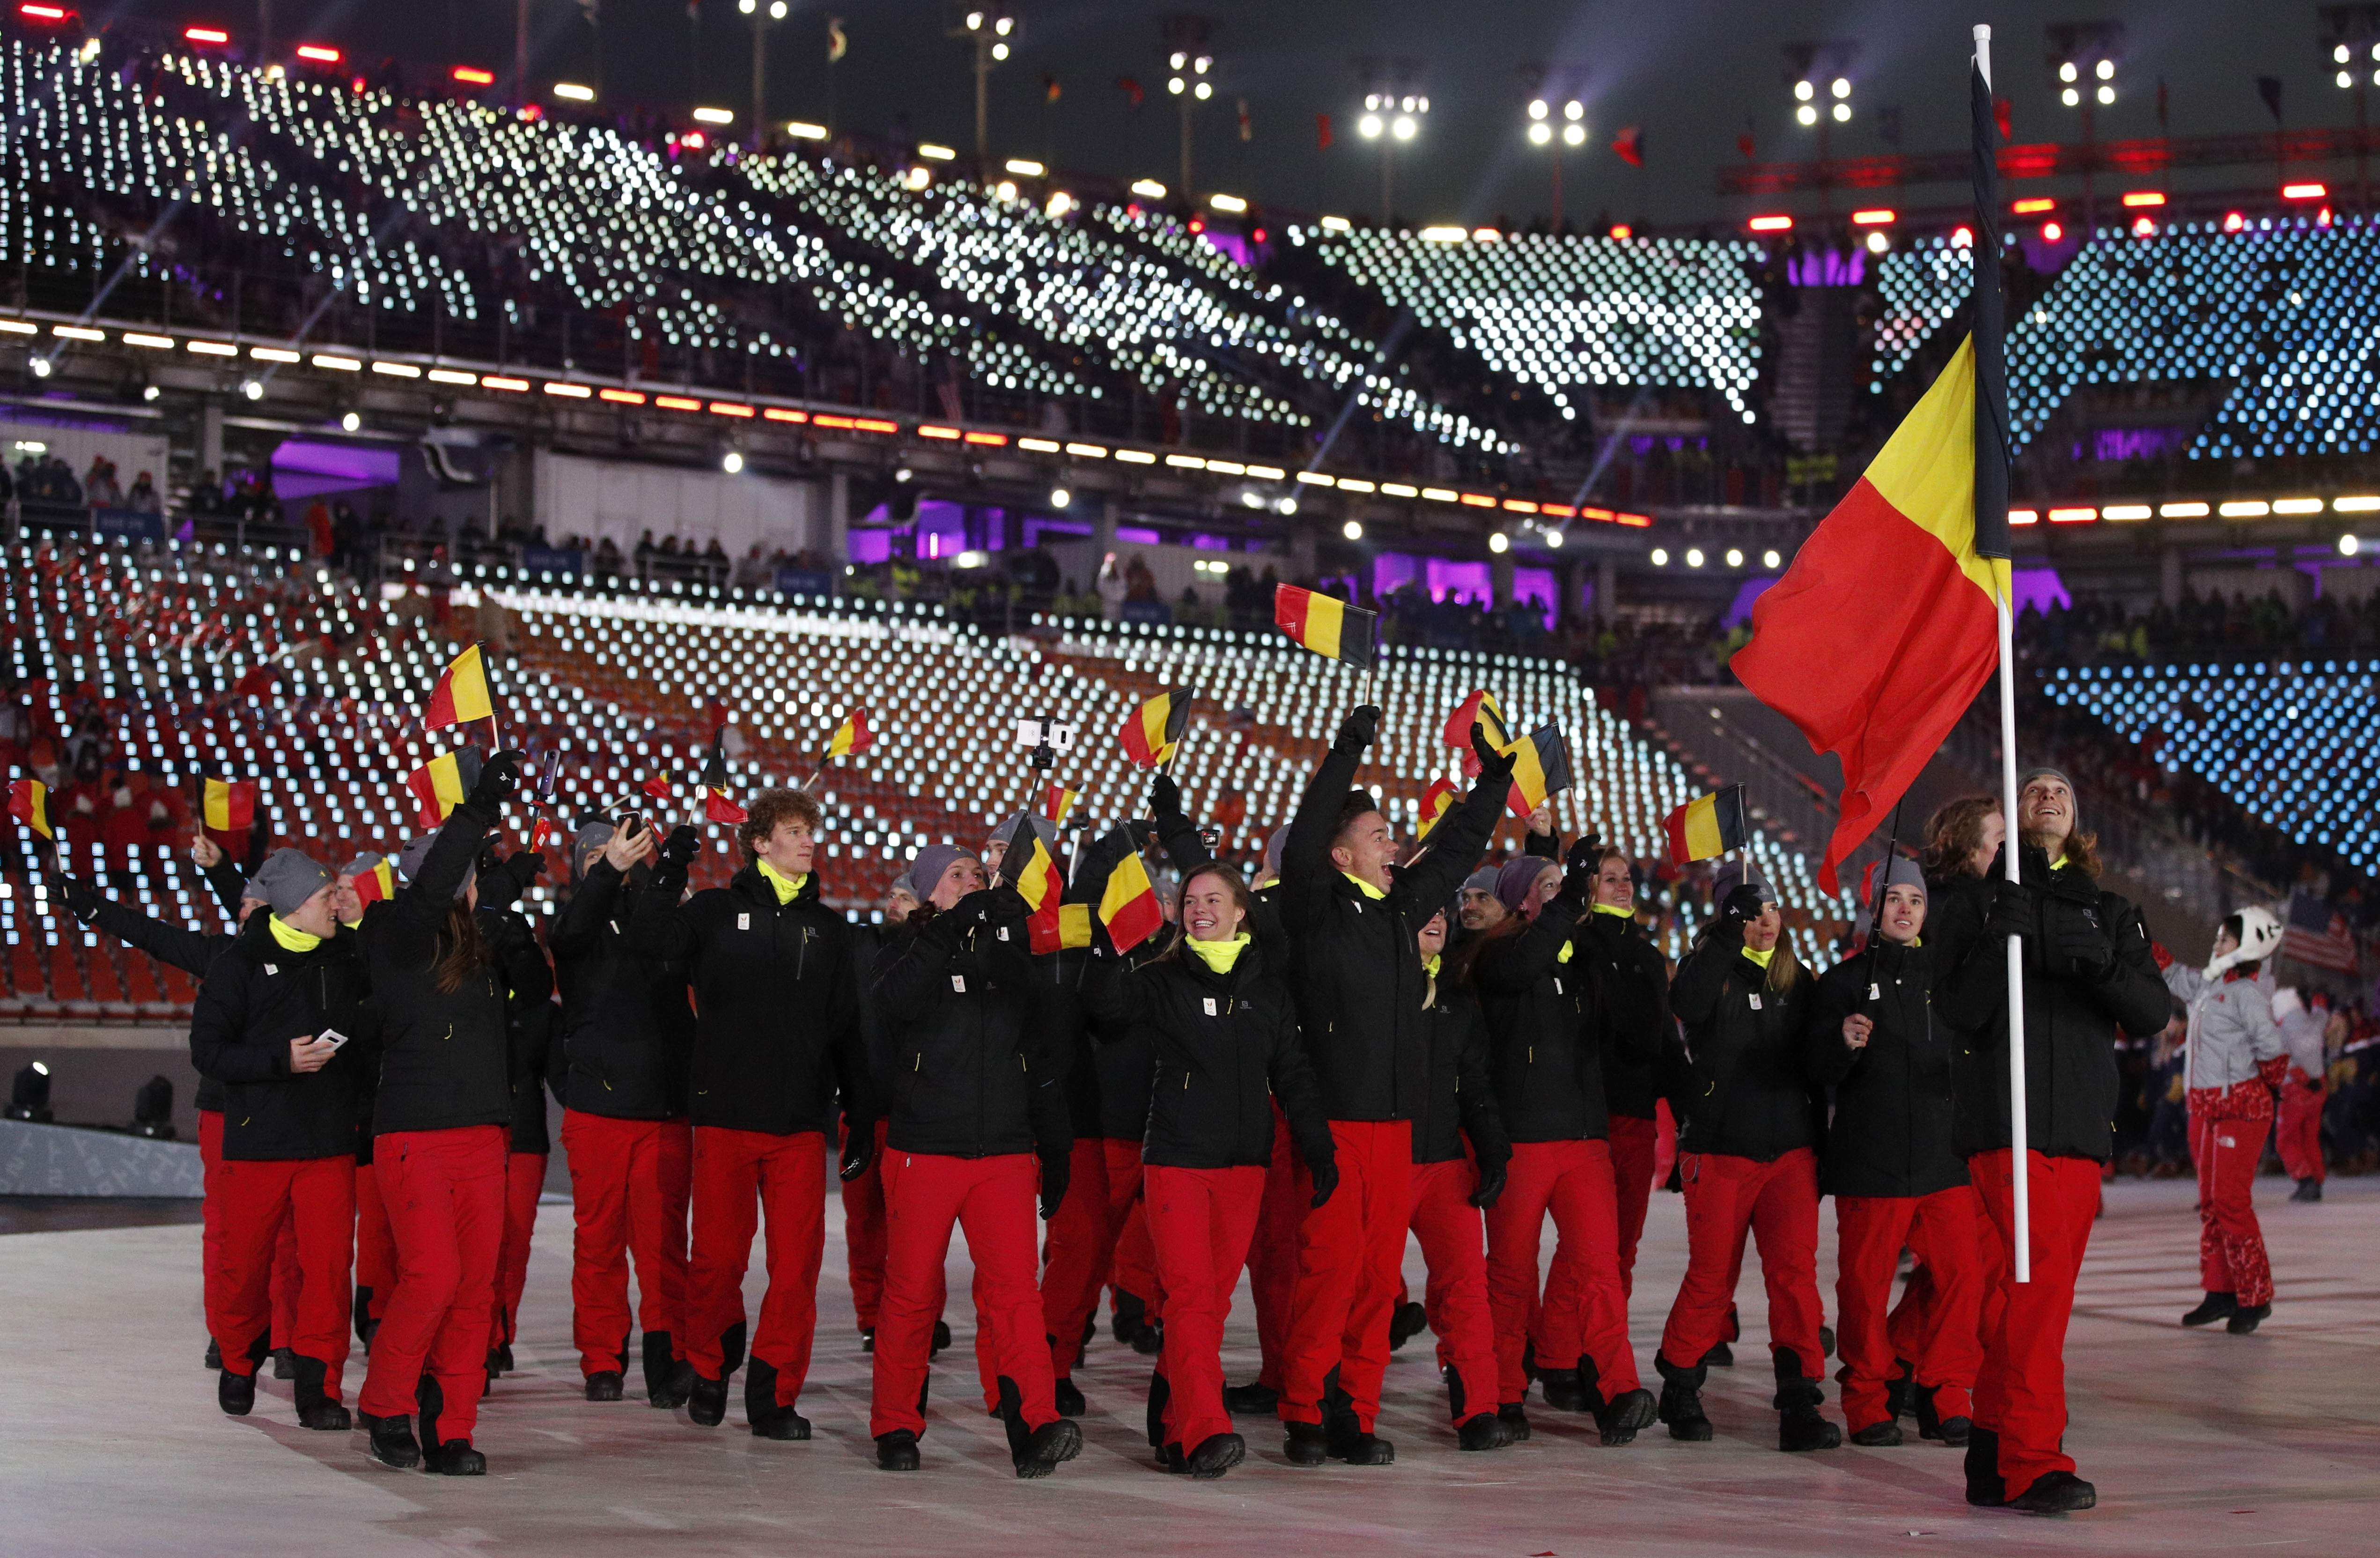 Seppe Smits carries the flag of Belgium during the opening ceremony of the 2018 Winter Olympics in Pyeongchang, South Korea, Friday, Feb. 9, 2018. (AP Photo/Jae C. Hong)